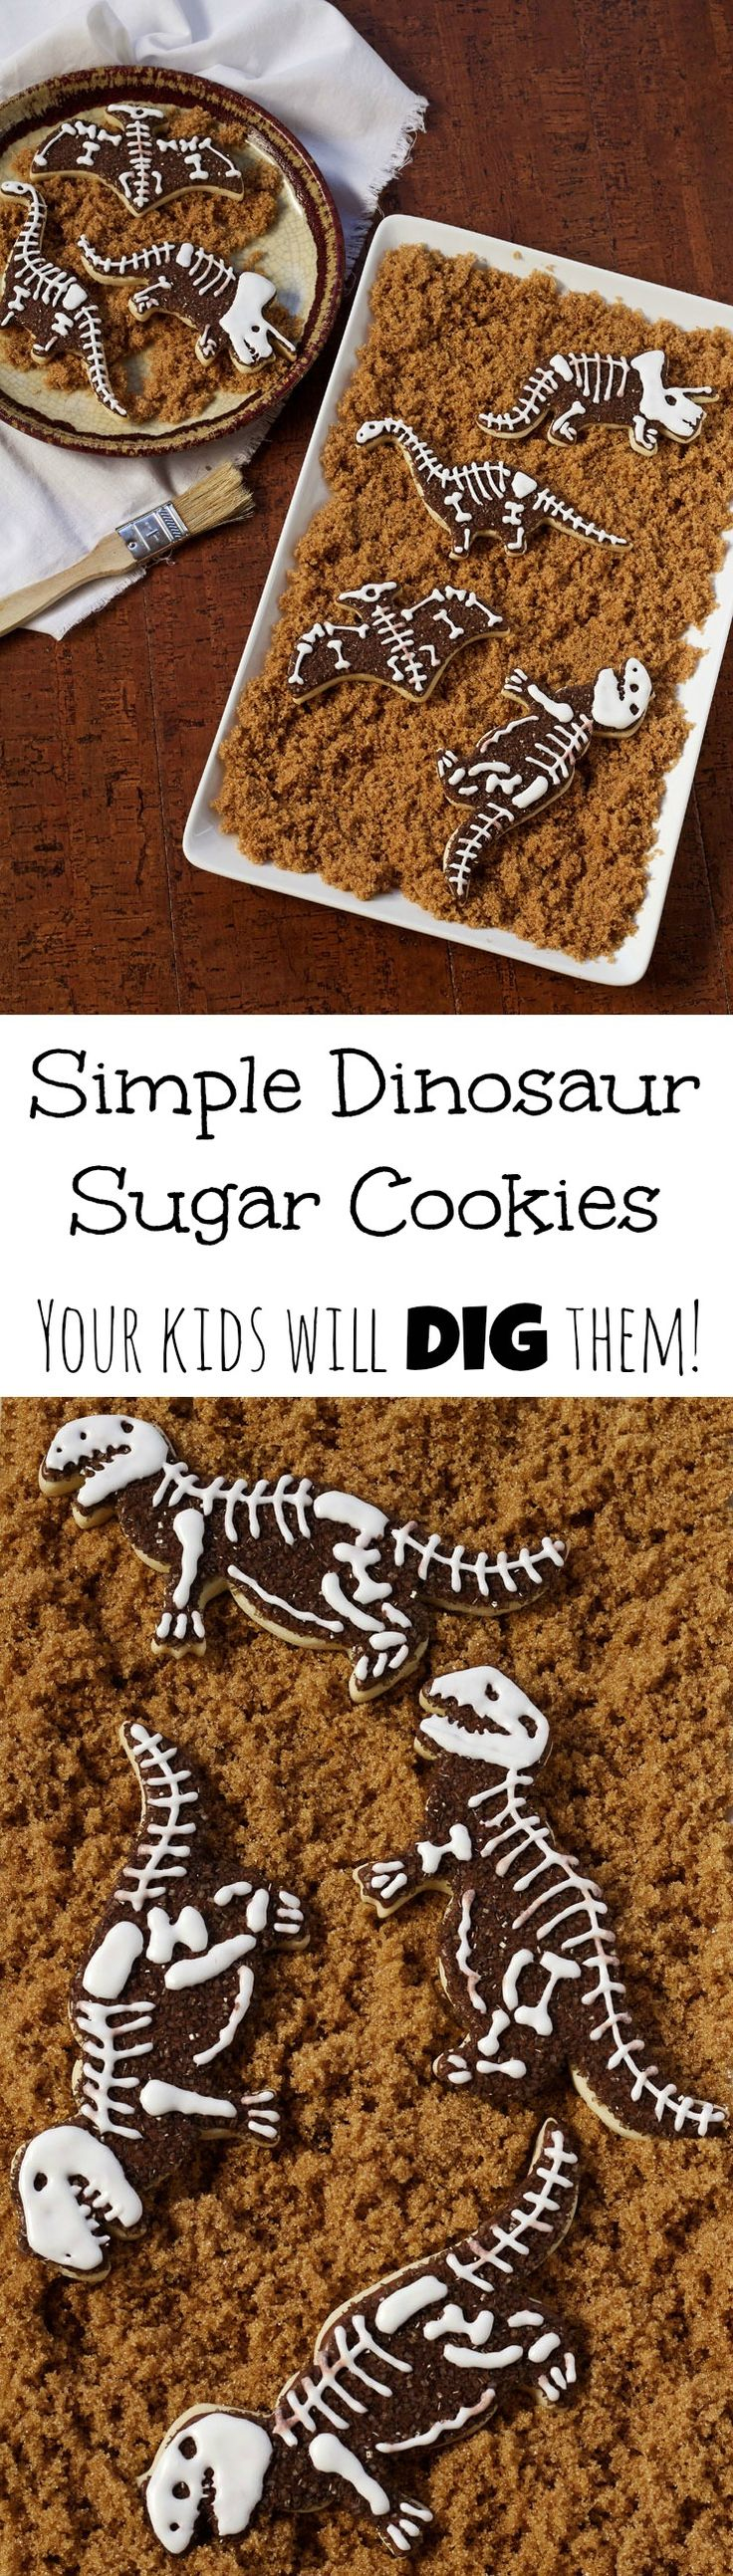 Simple Dinosaur Cookies via thebearfootbaker.com